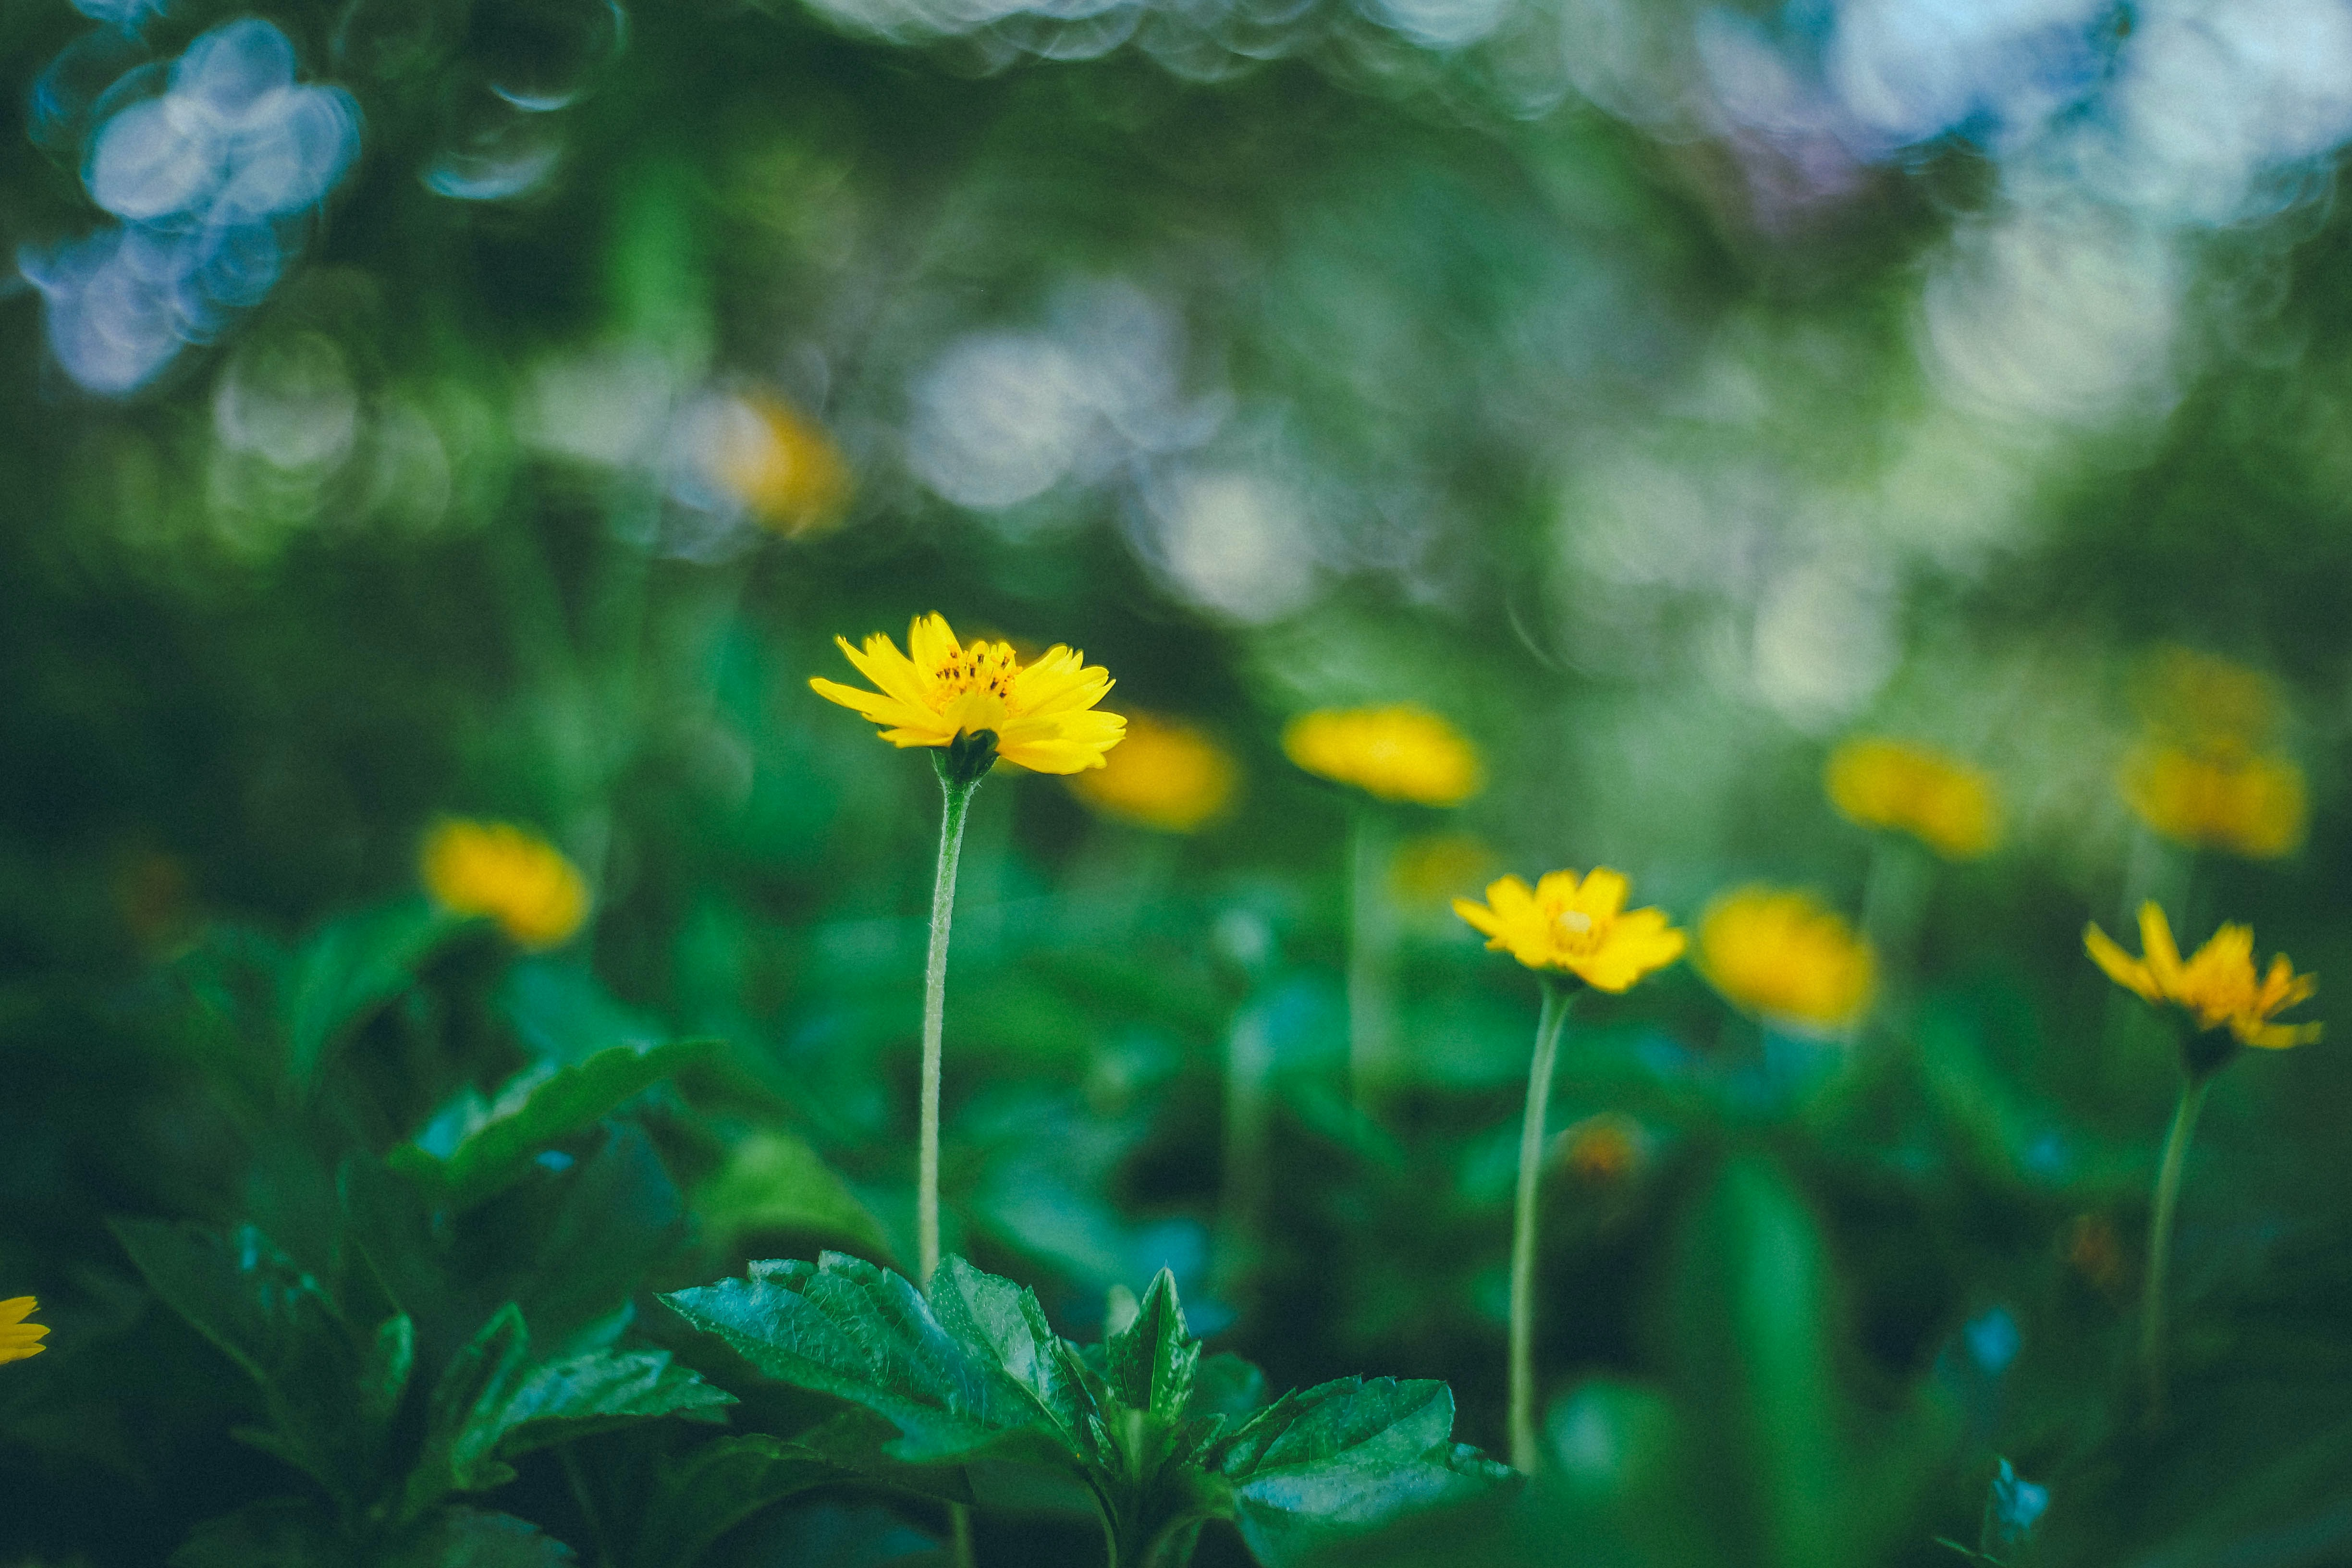 A blurry shot of yellow flowers with bokeh effect in the background